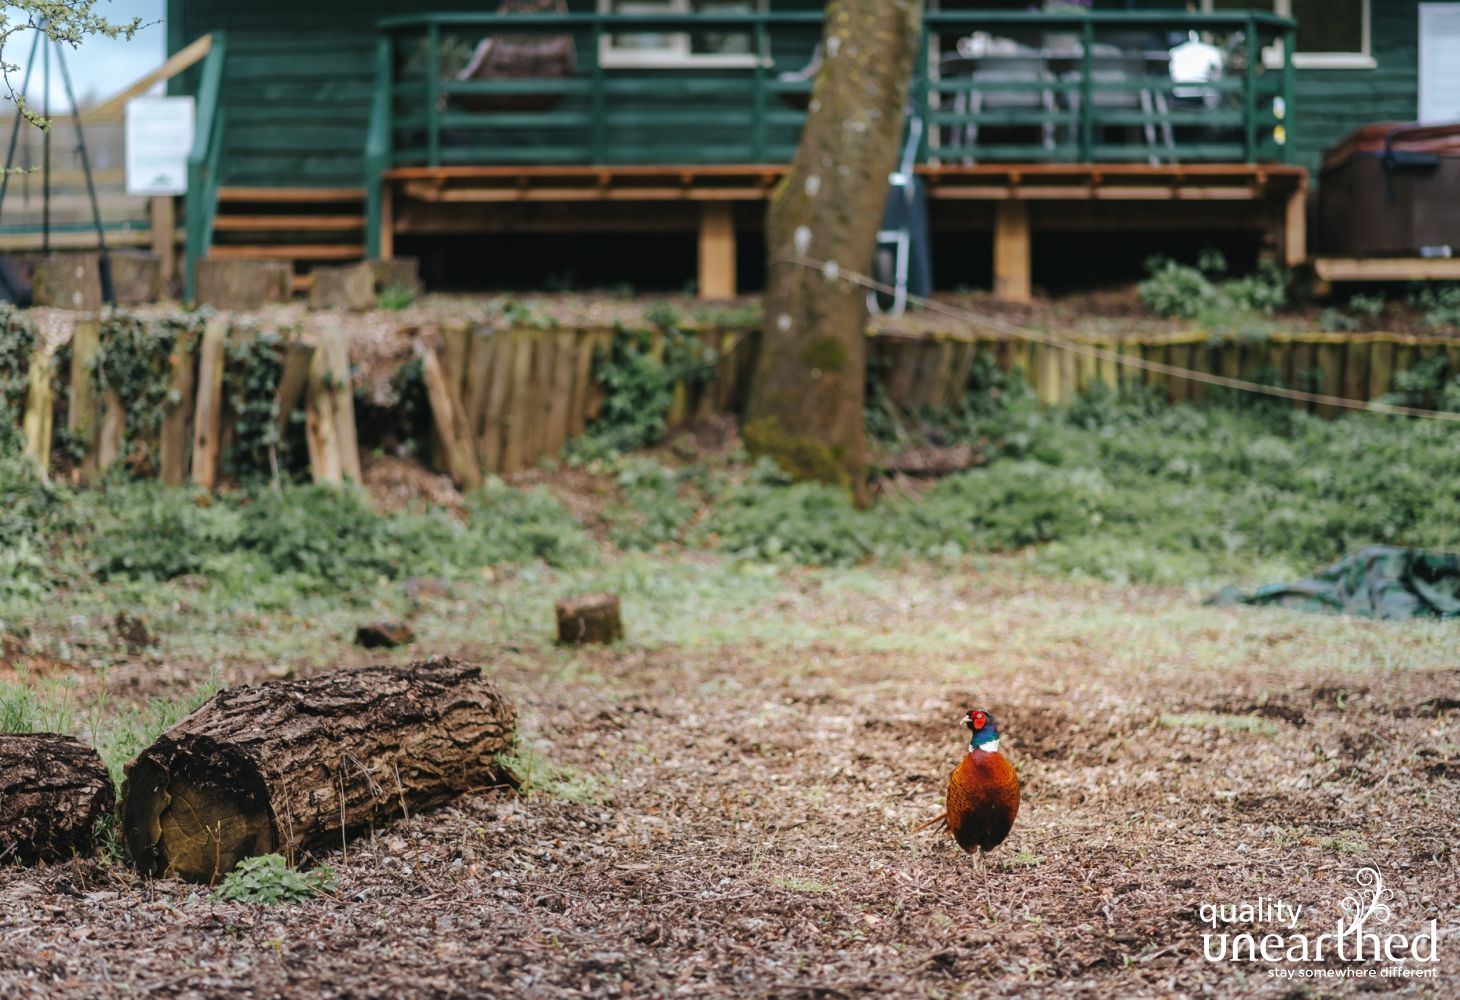 A pheasant pops and says hello at the fire pit that belongs to the wooden family cabin